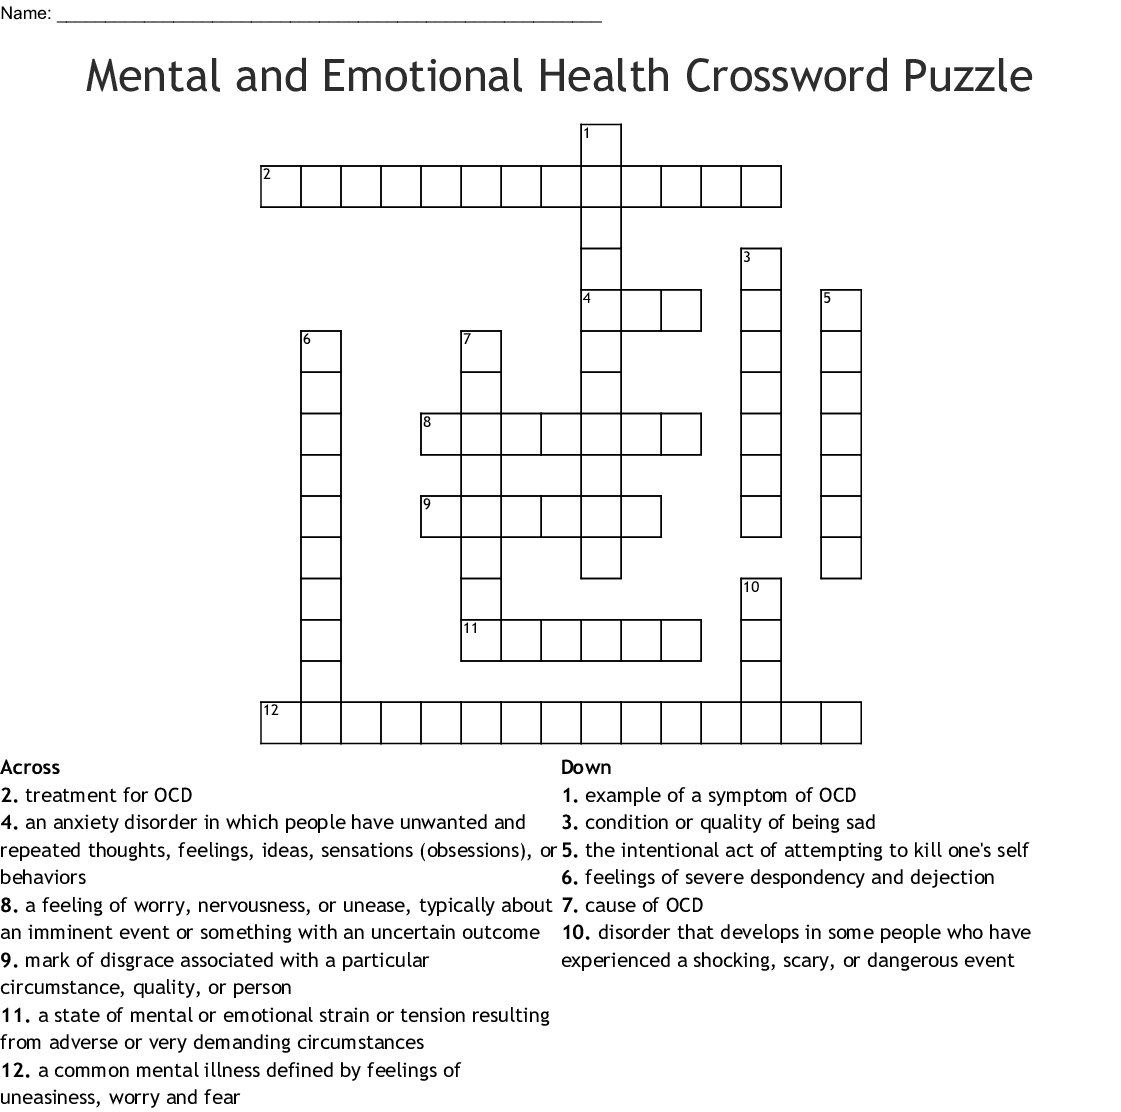 Mental And Emotional Health Crossword Puzzle Crossword - Wordmint - Printable Crossword Puzzles For Mental Health